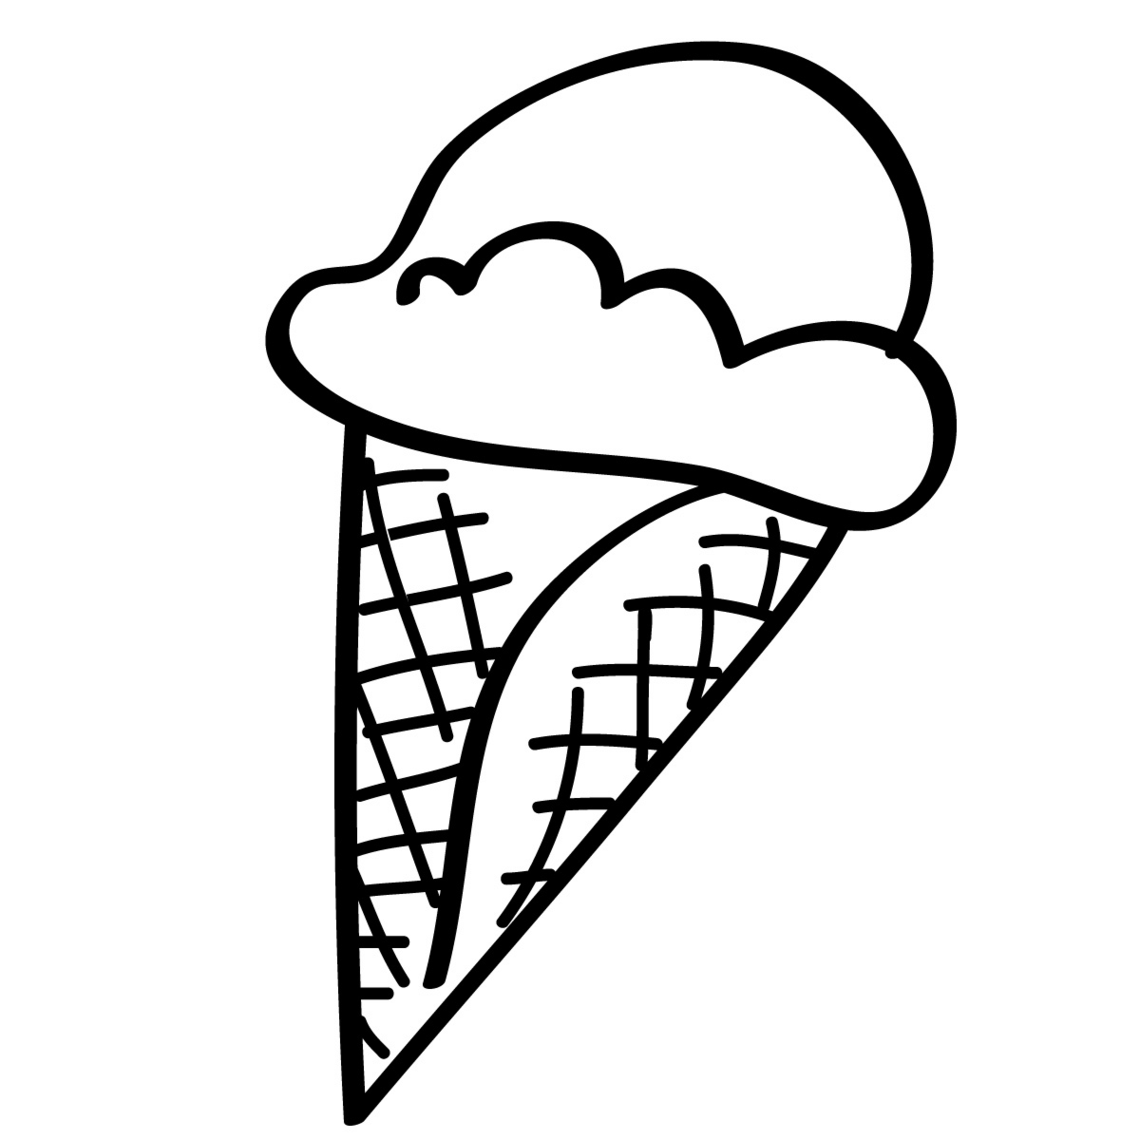 Ice Cream Cone Coloring Pages To Print